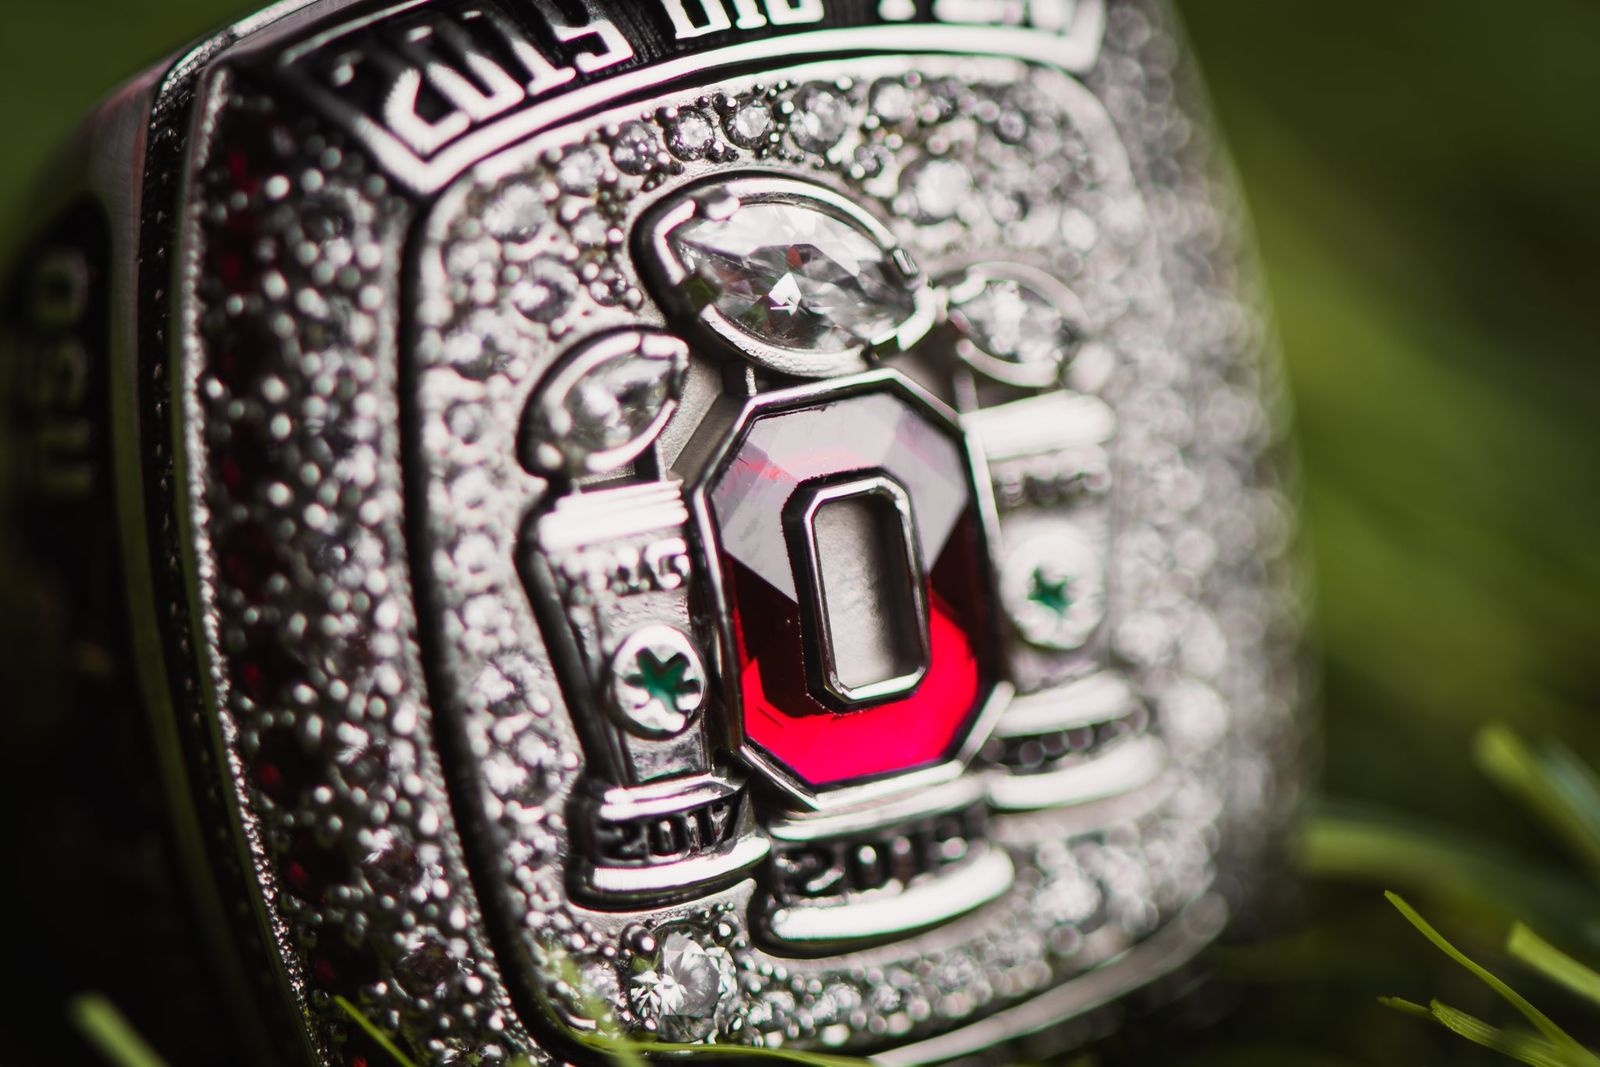 Ohio State unveils 2019 Big Ten Championship rings real pics